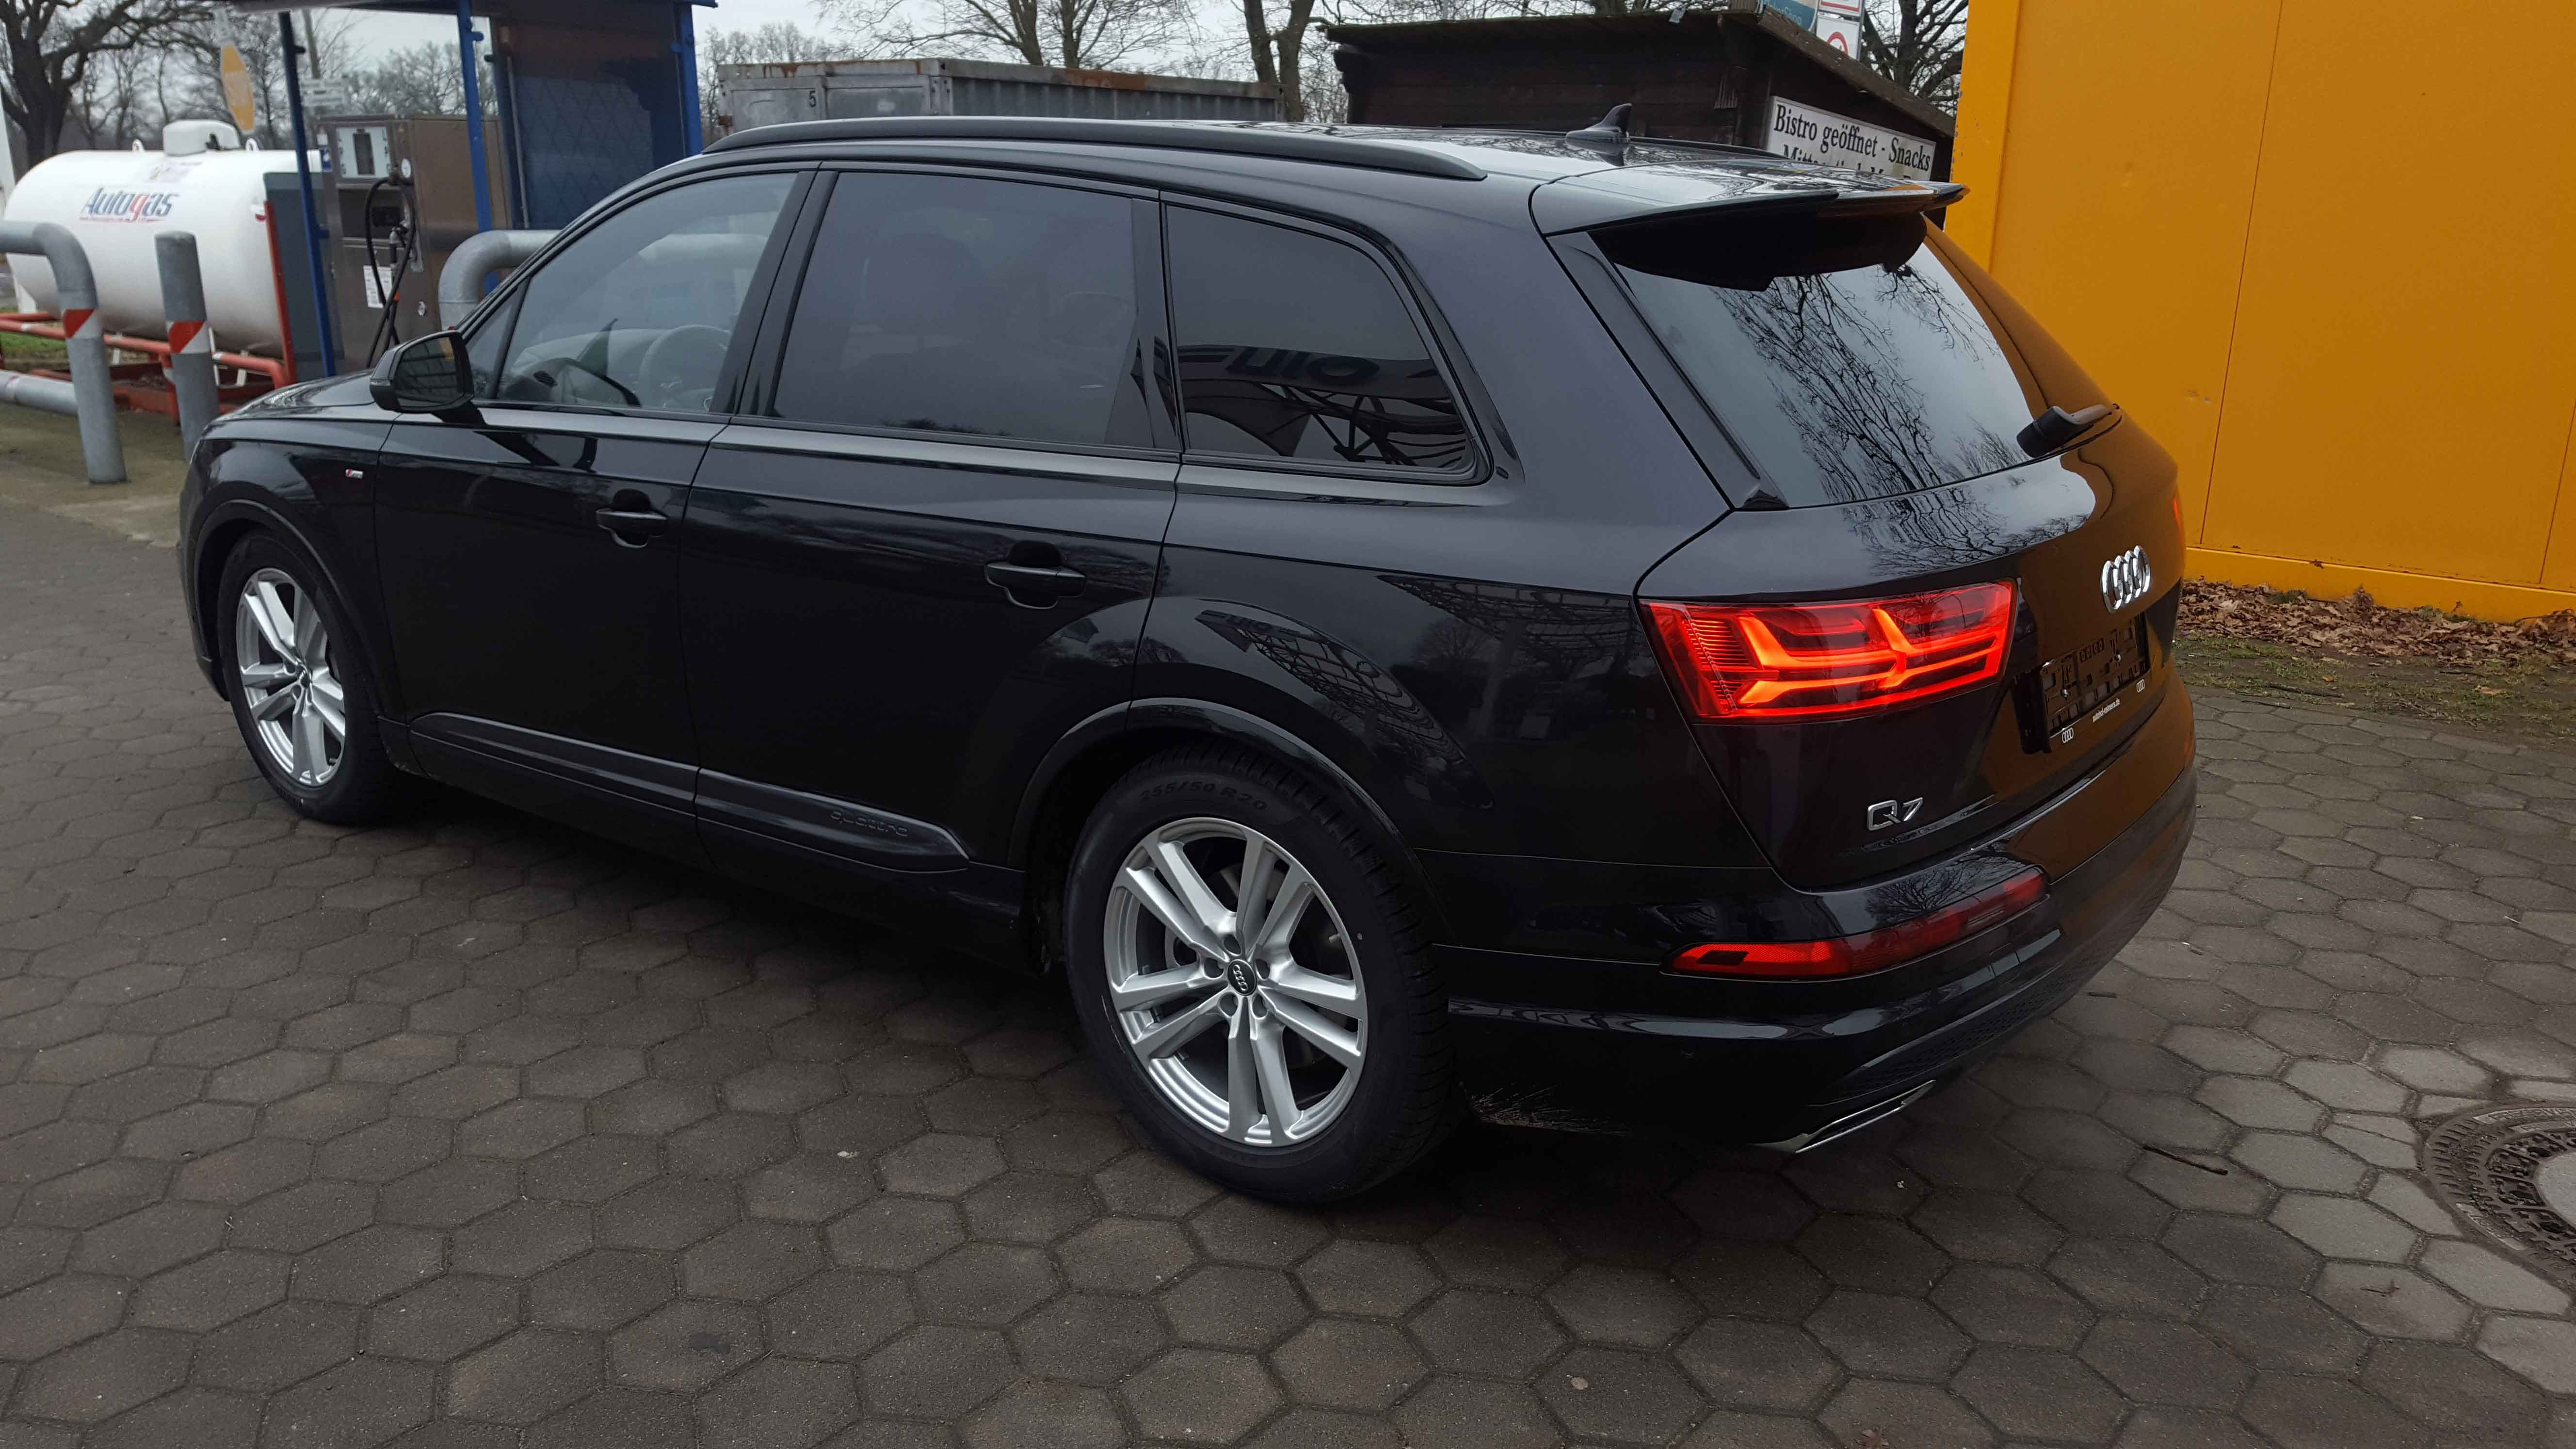 Audi Q7 4M 3 0 TDI - Active Sound retrofitting and encodings